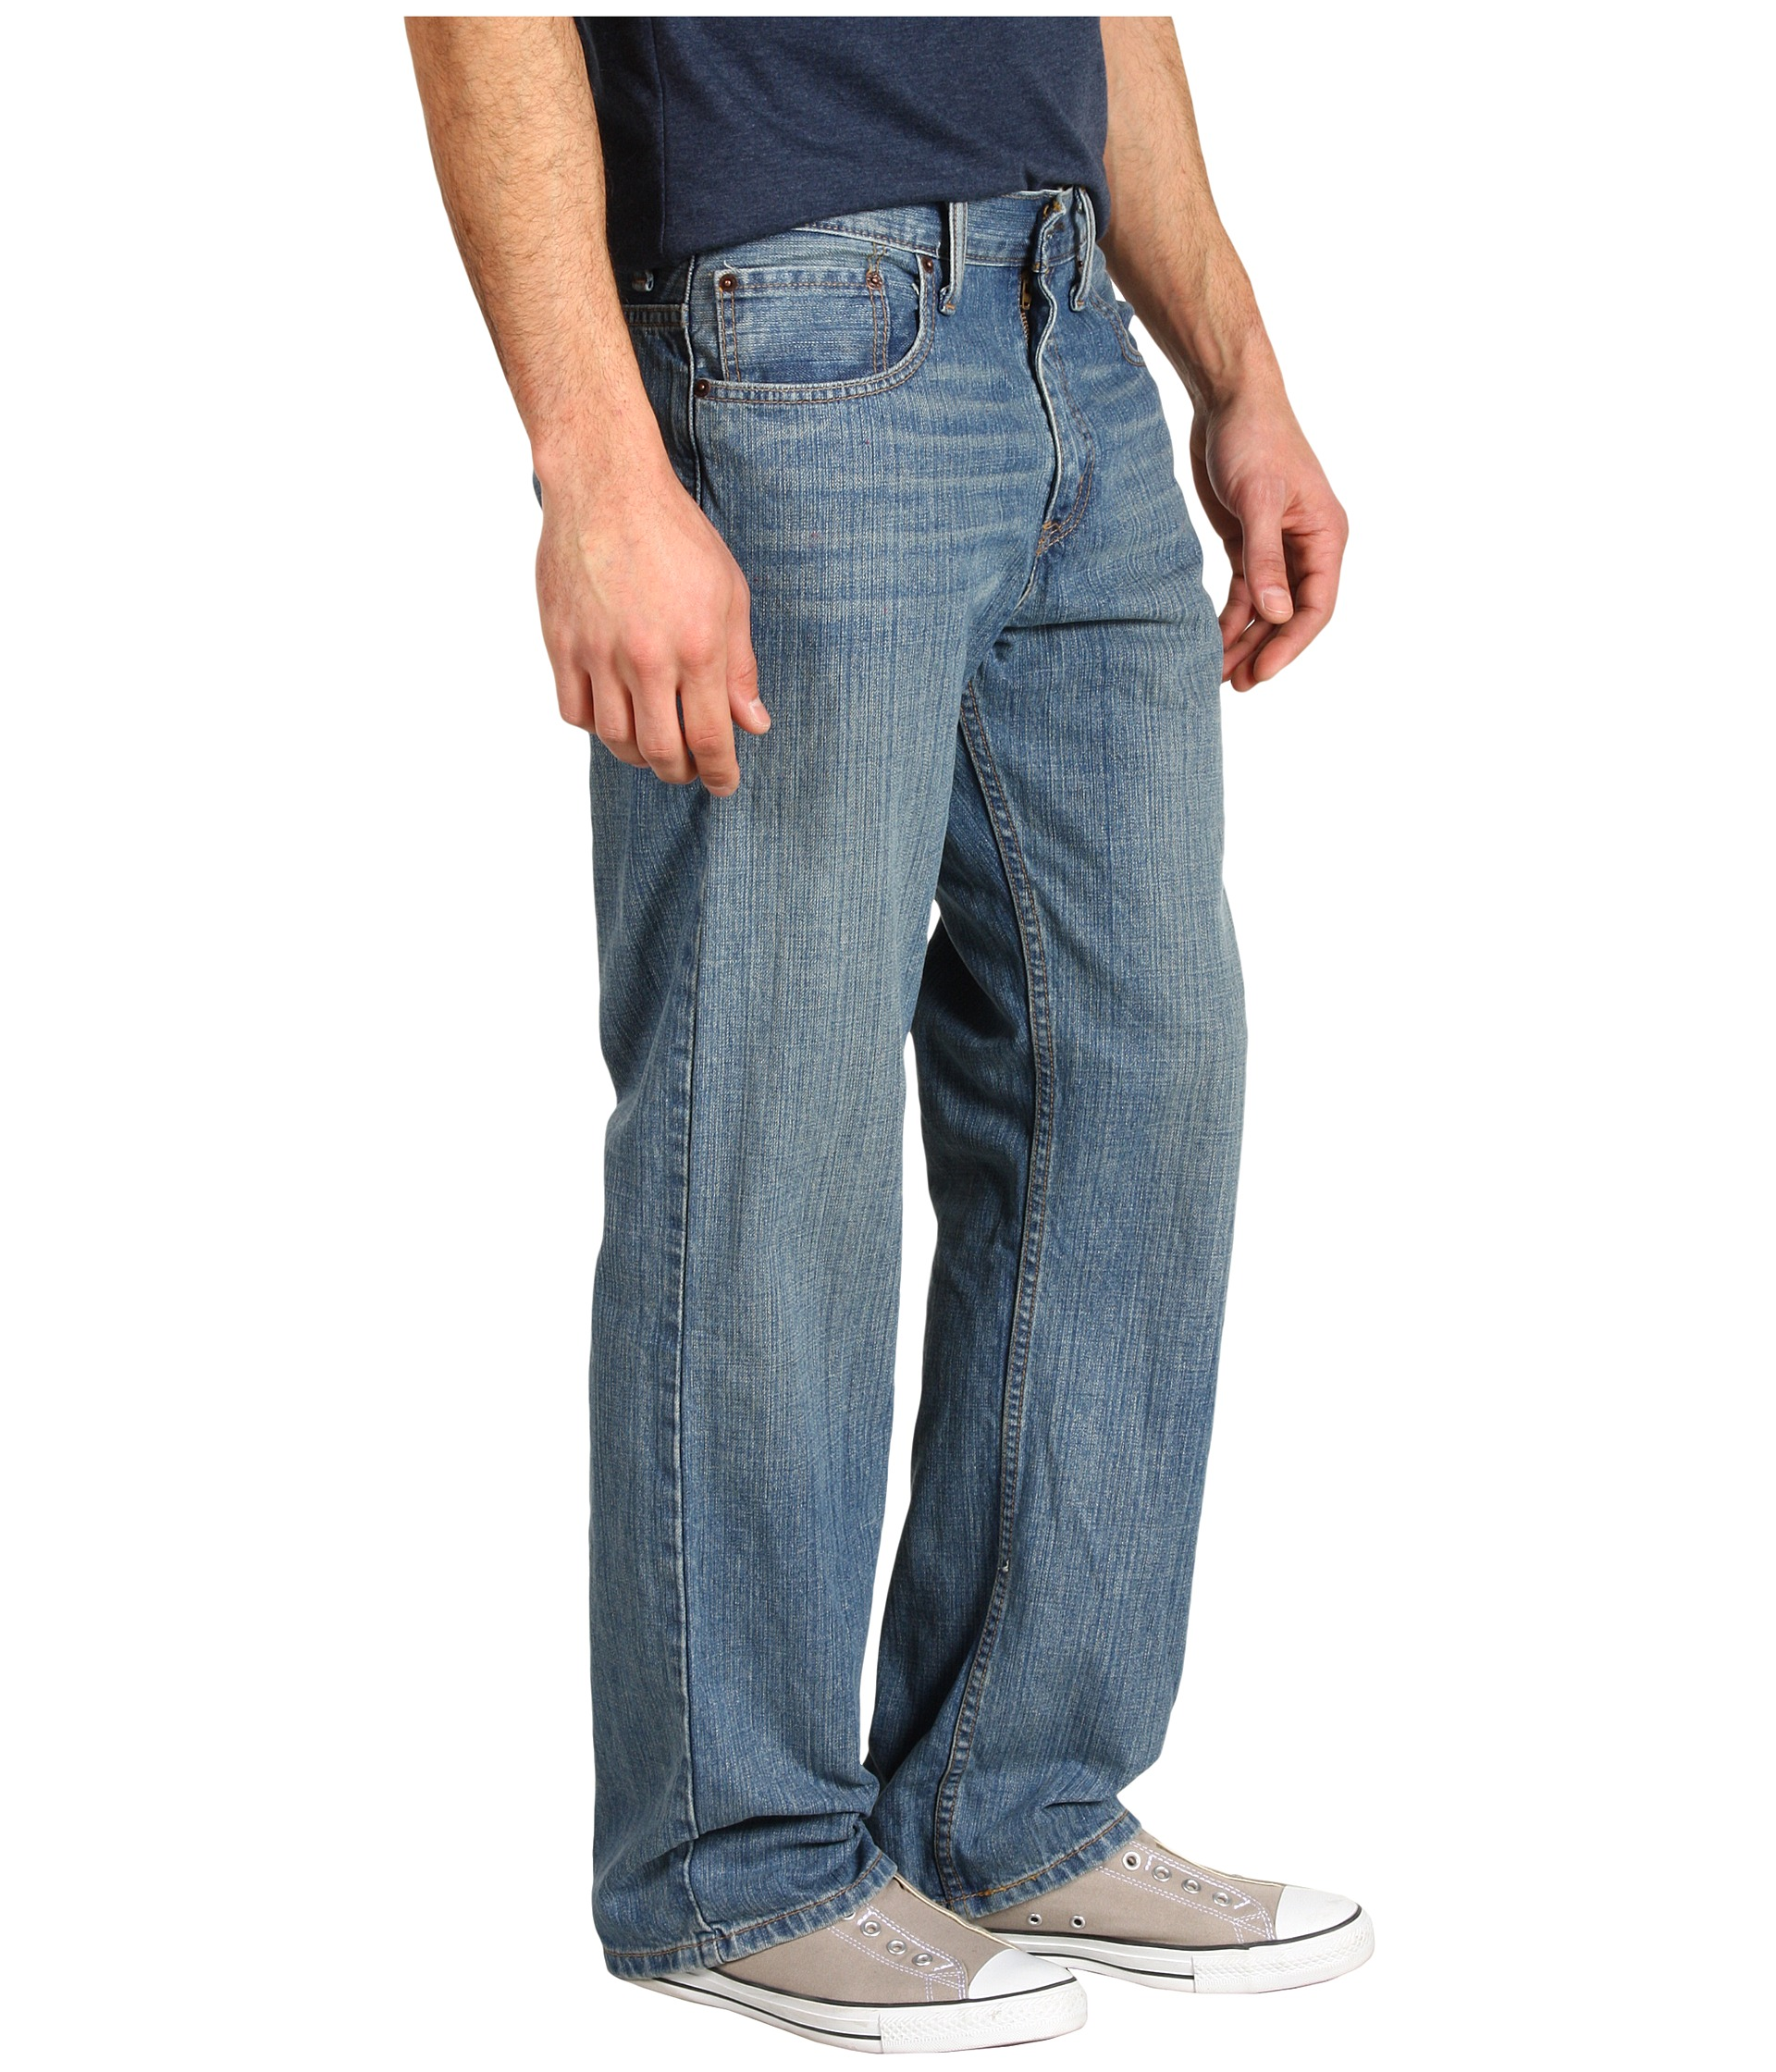 These Ariat jeans feature an extra relaxed fit through the seat and thigh with a lower rise and straight leg. Built tough as nails, these Rebar jeans are 2X more durable and will work as hard as you do.